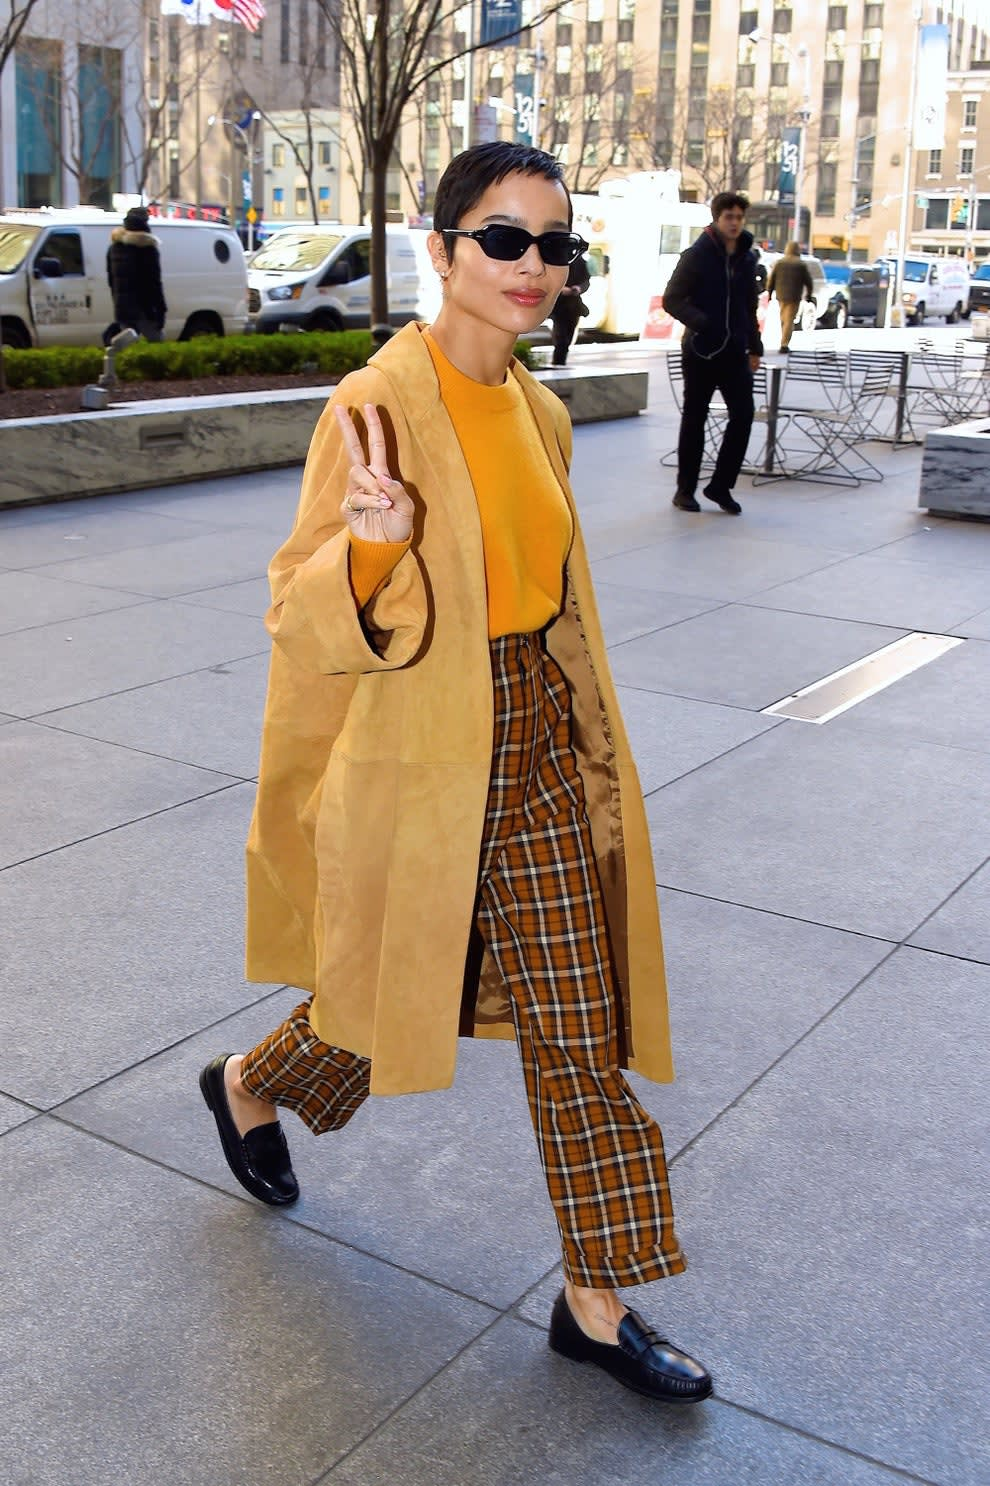 Zoe on a sidewalk in long jacket plaid pants loafers giving peace sign